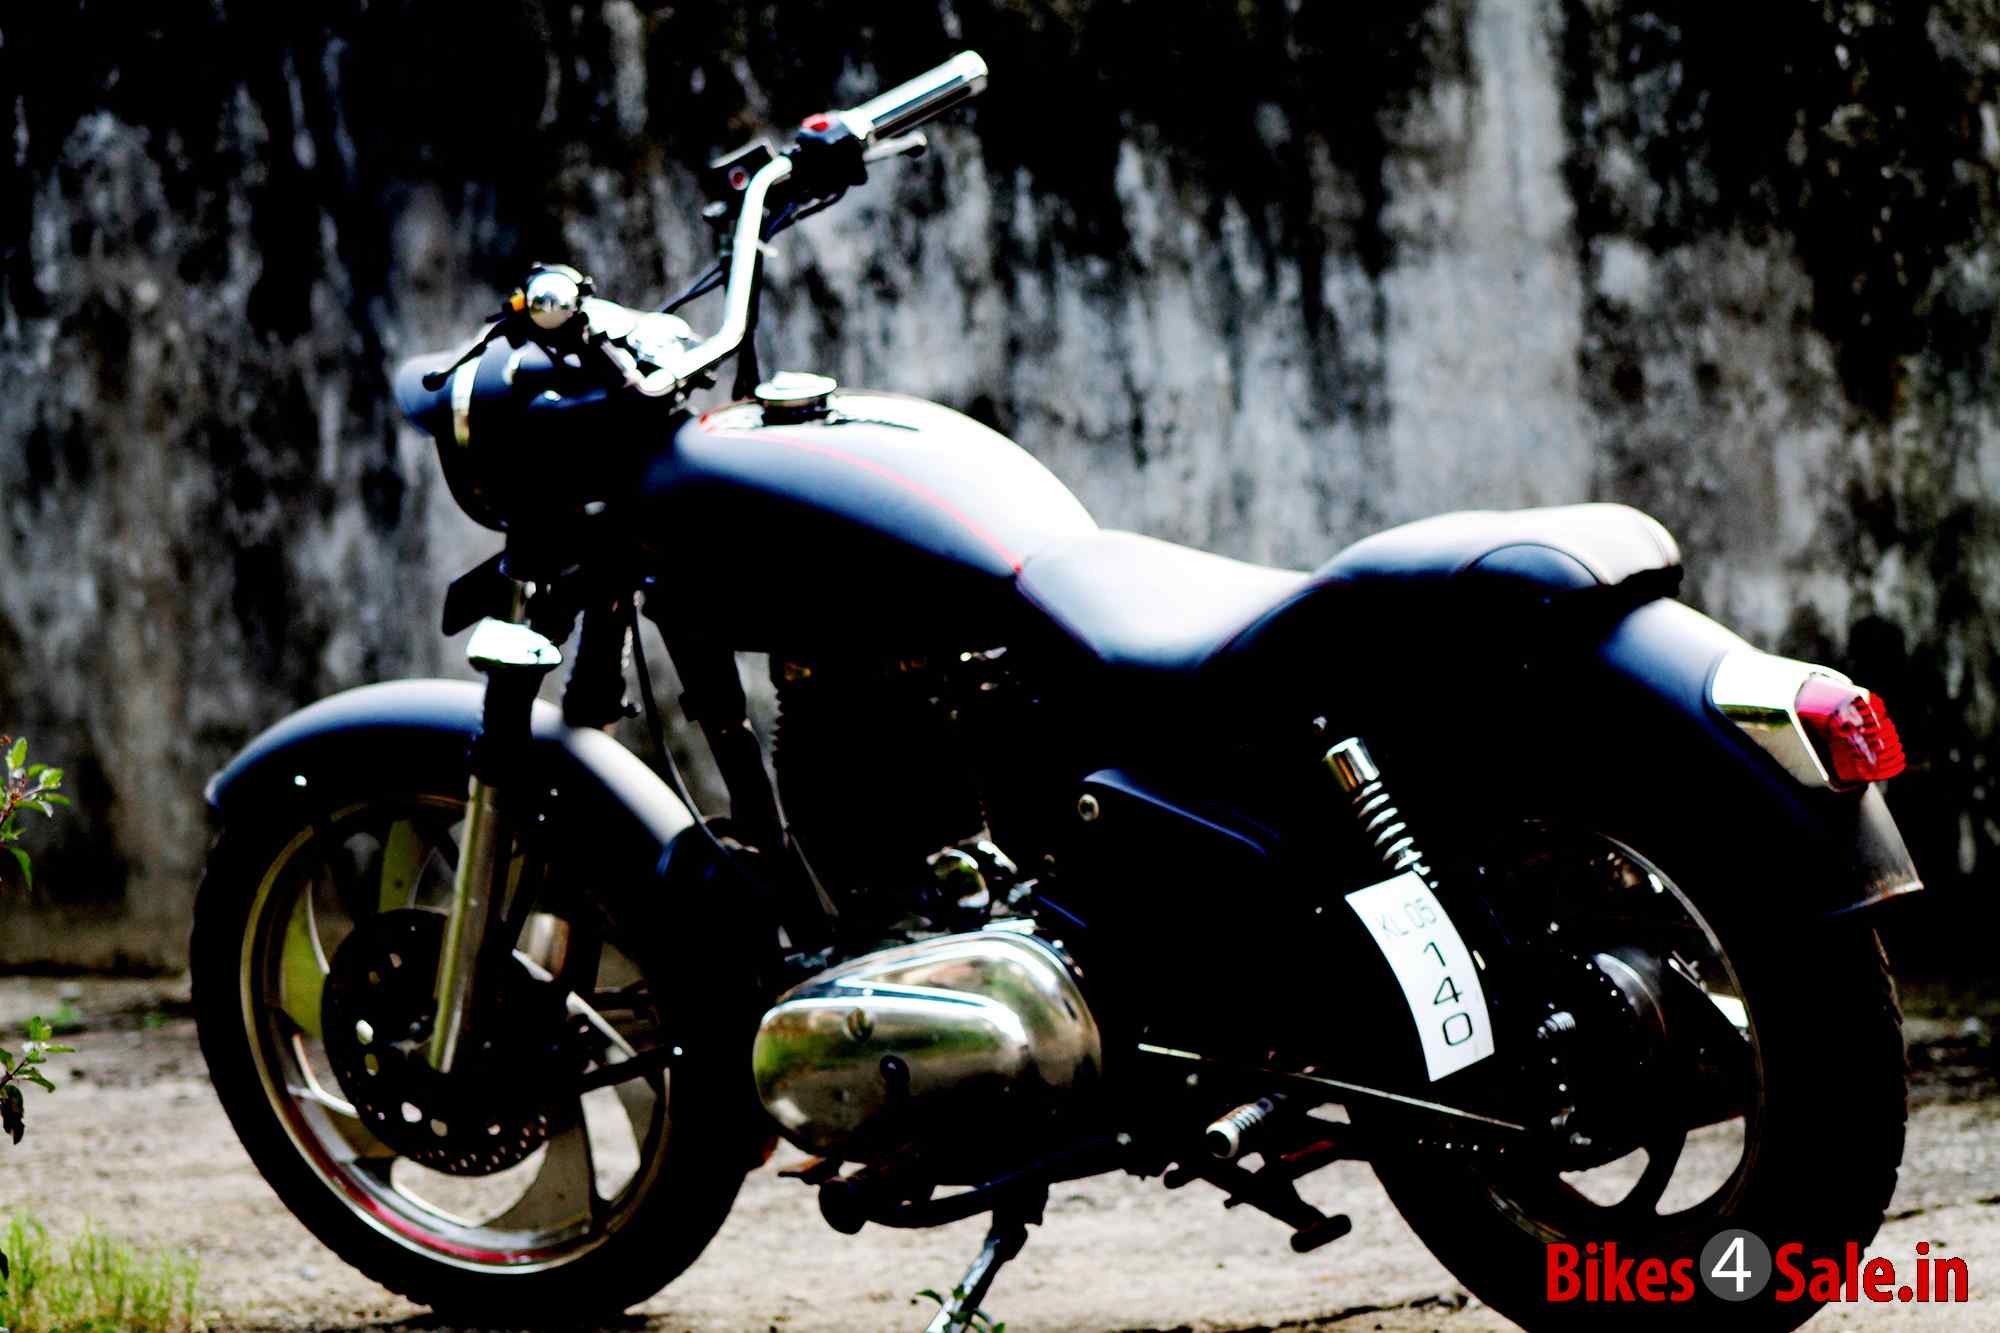 Used Motorcycles Dealers >> Slide 6 : The Story of a Transformed Bull - Bikes4Sale